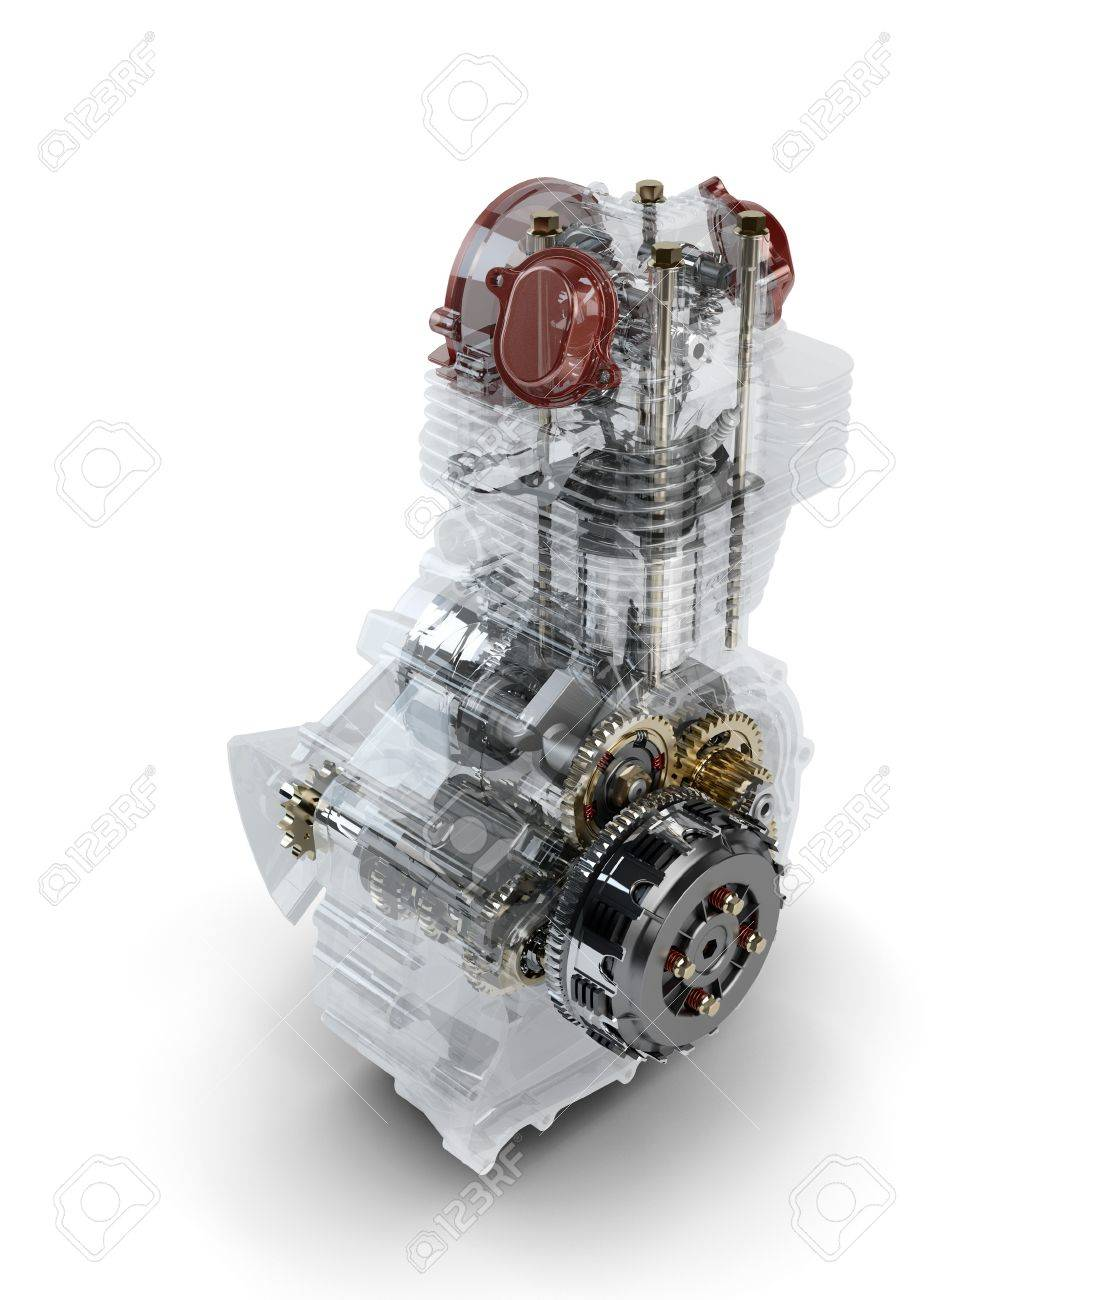 Assembled motorcycle performance engine in transparent case isolated on white Stock Photo - 16355550